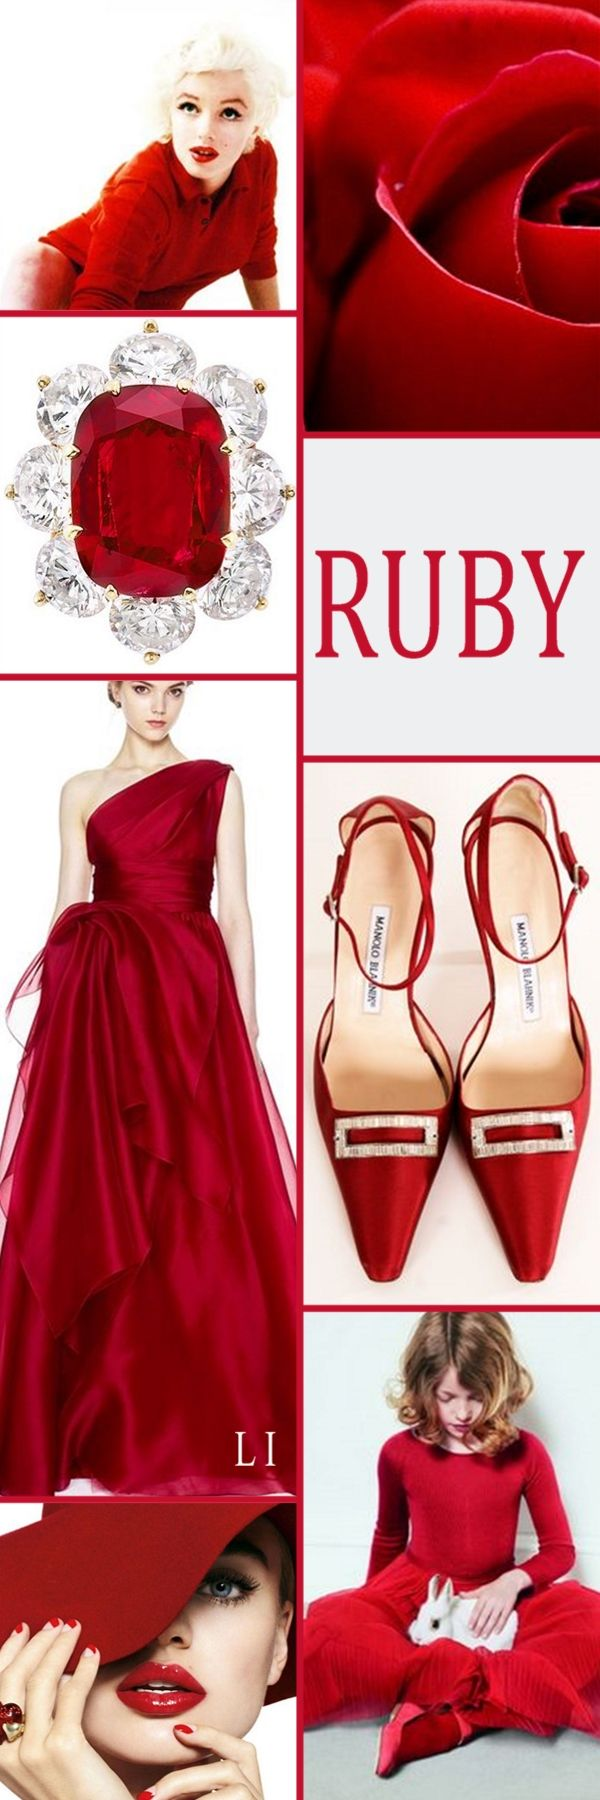 "Hi Ladies. Tonight's color "" RUBY RED"" . Thanks for the pretty board today.  Please check your pins after pinning to the board. The description will not change until after. Happy Pinning ❤"